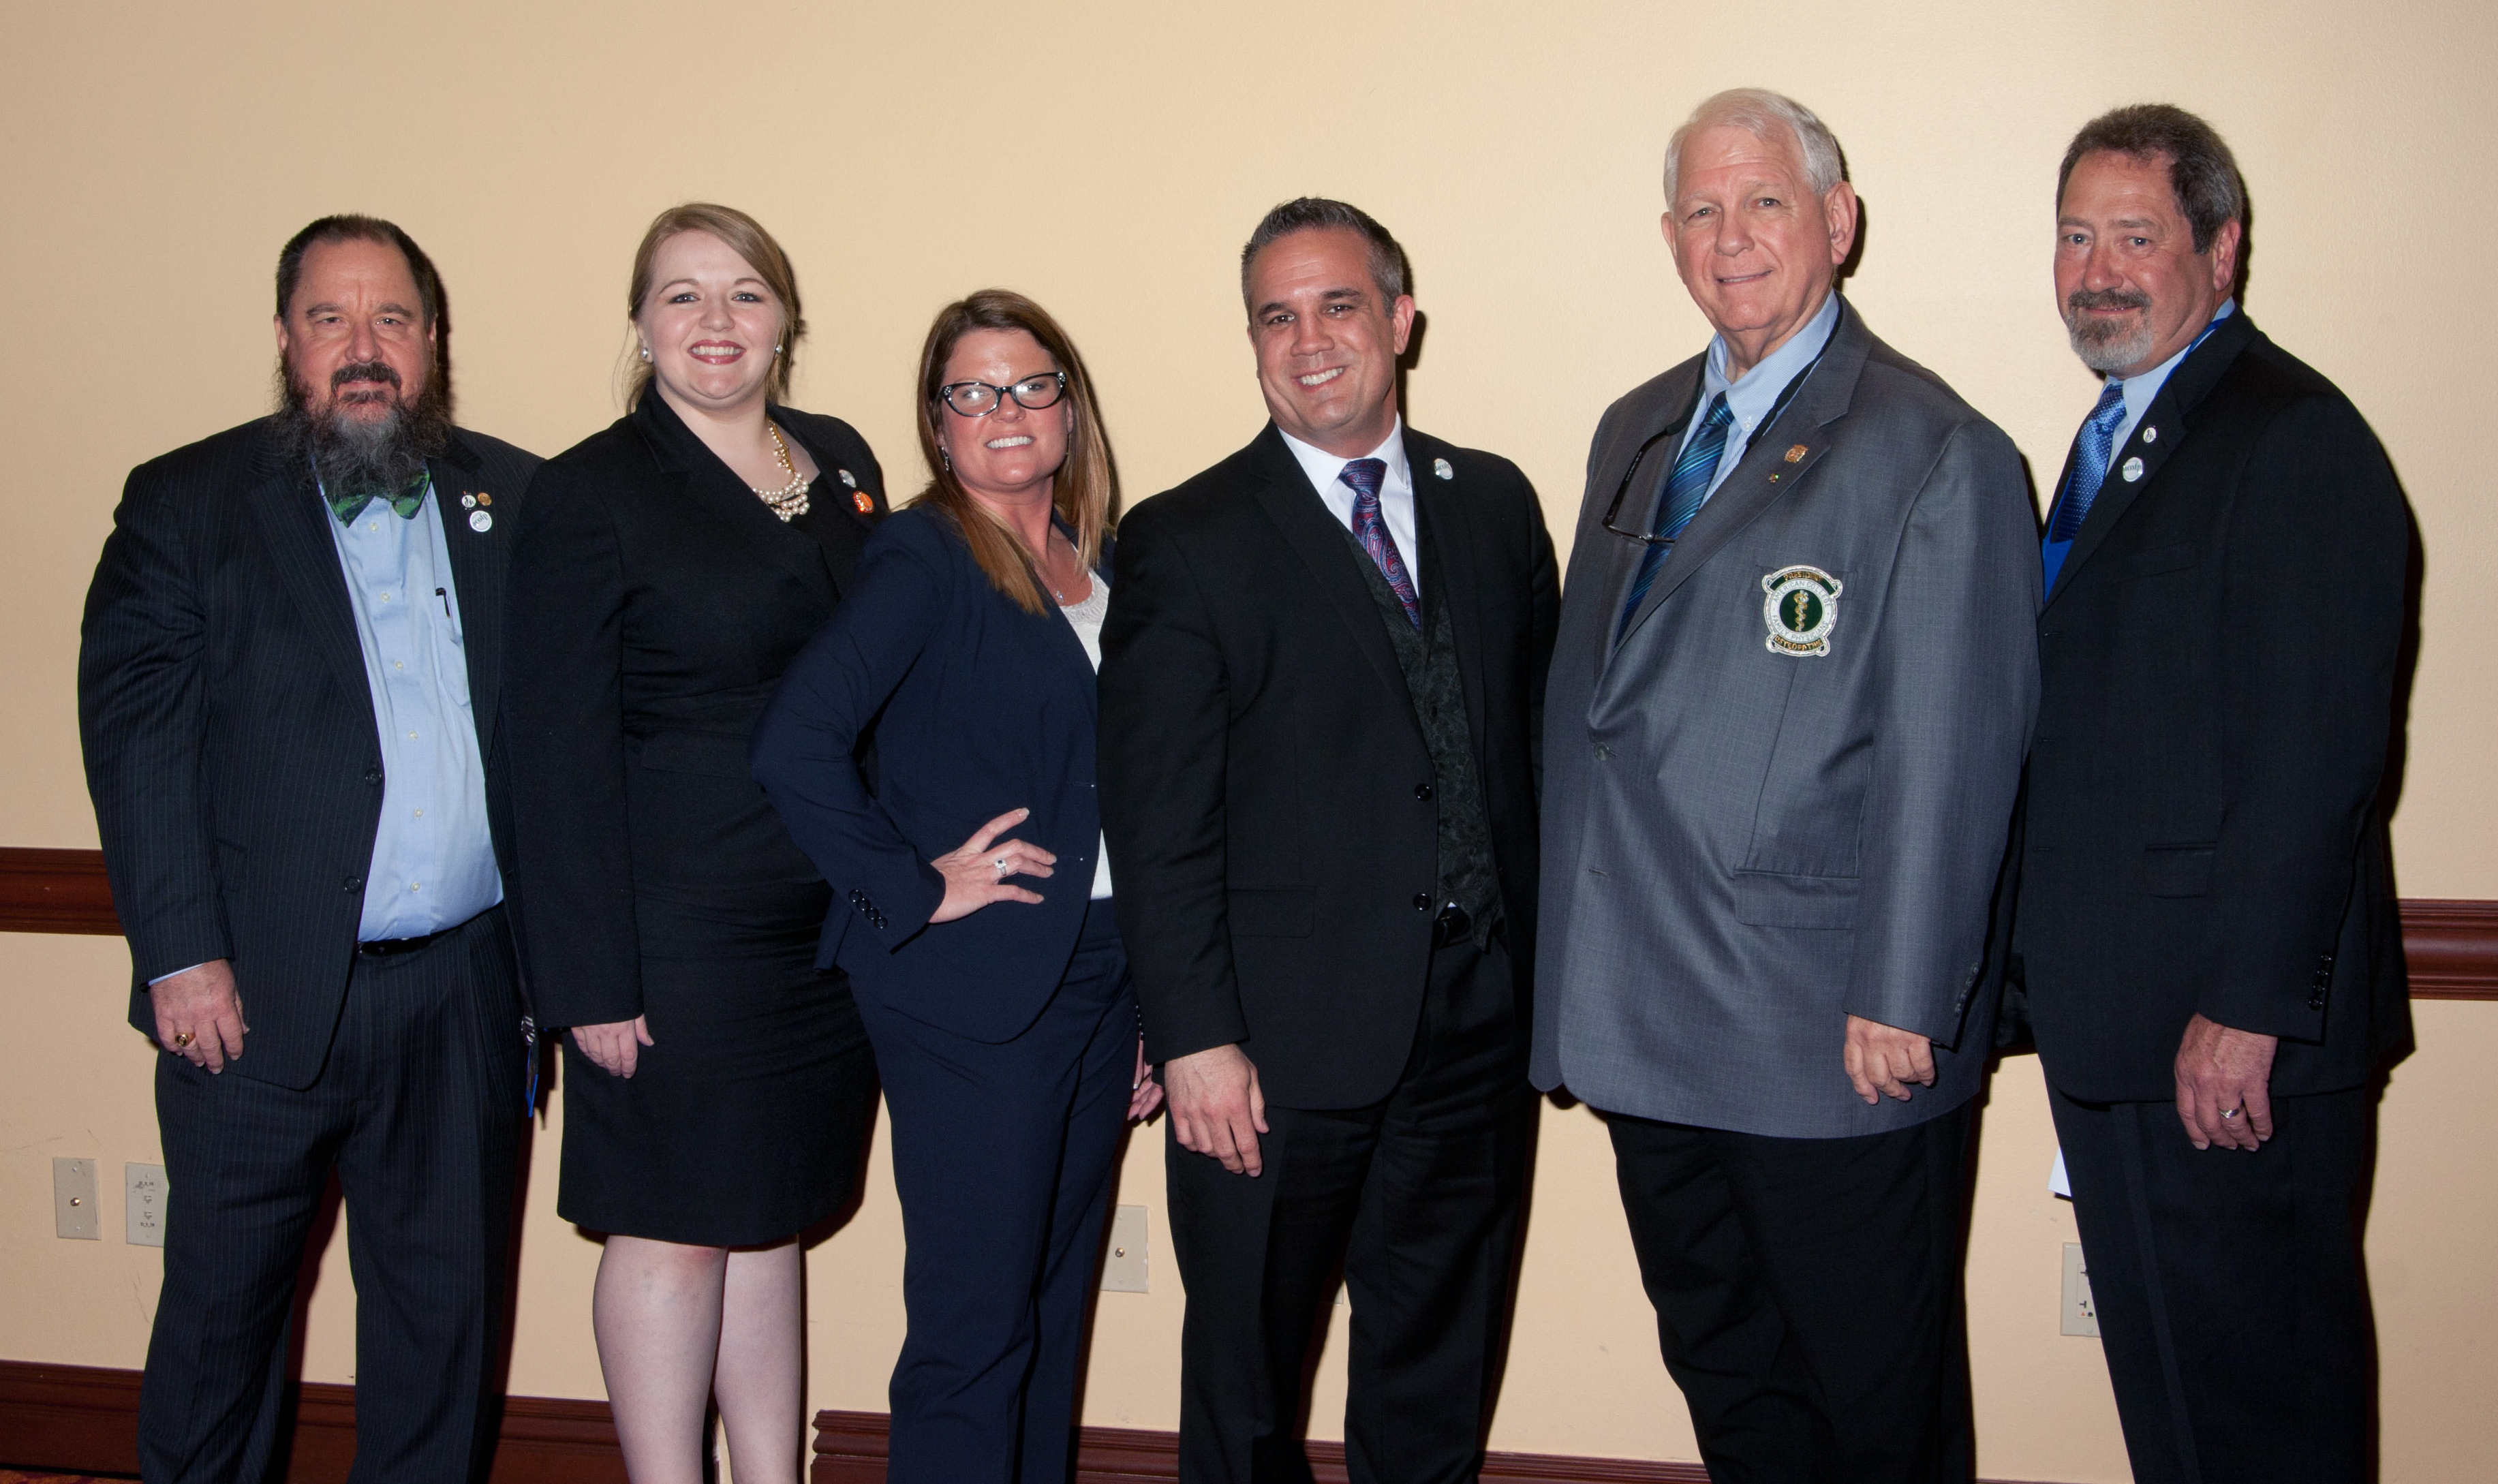 Pictured (L-R) Michael K. Cooper, DO, FACOFP; Rebecca D. Lewis, DO, DO; Monica M. Woodall, DO; John L. Owens, DO; Rodney M. Wiseman, DO, FACOFP dist.; and, Duane G Koehler, DO, FACOFP